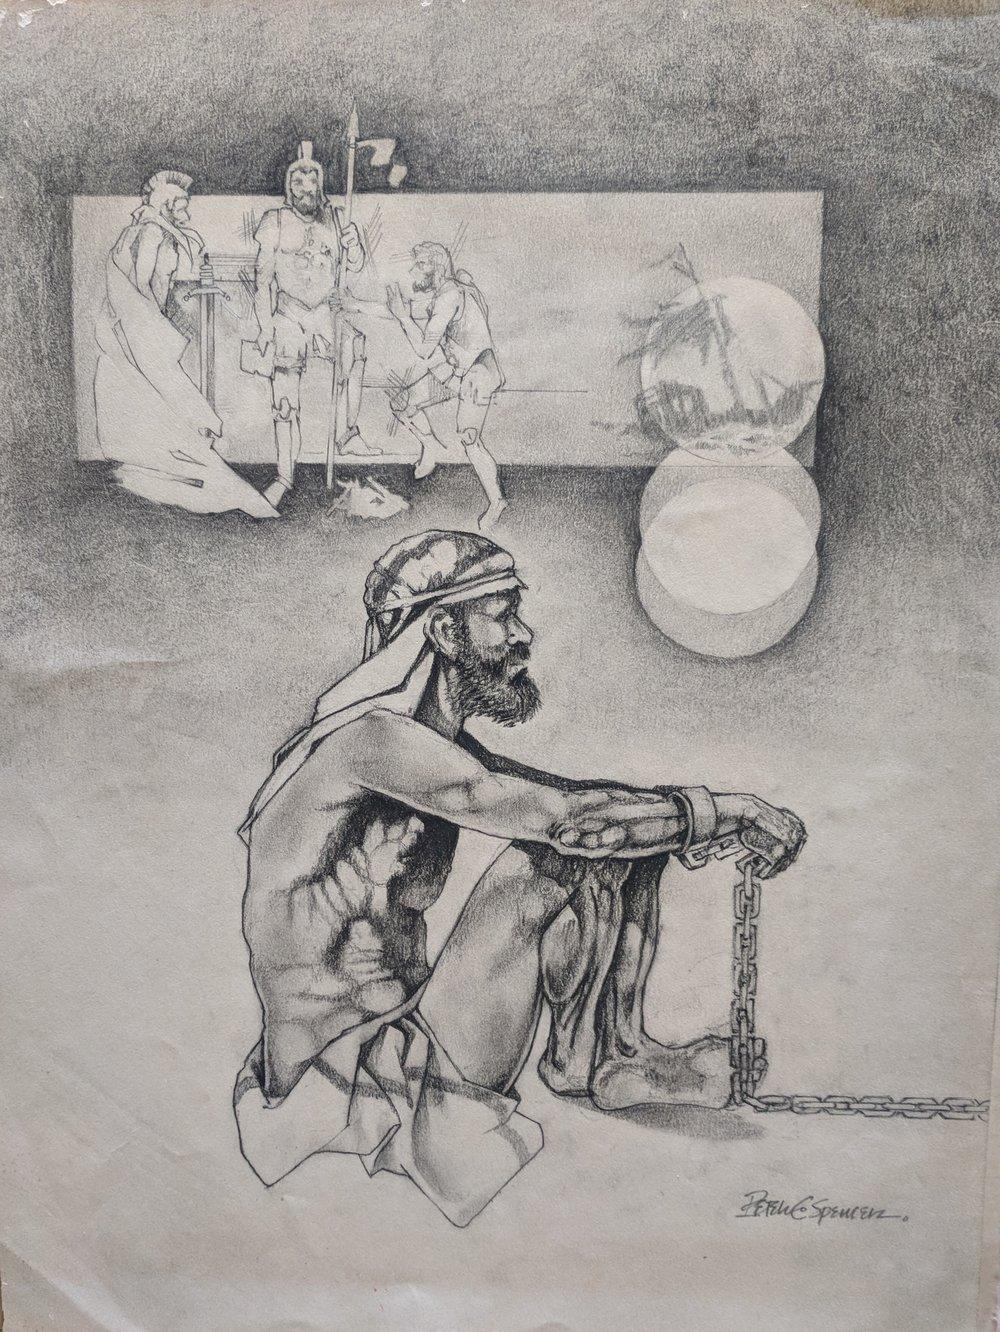 Paul in Chains. - Graphite on textured paper and mounted.Peter C. Spencer original hand-drawn illustration. Biblical imagery. Property of Peter C. Spencer (c).